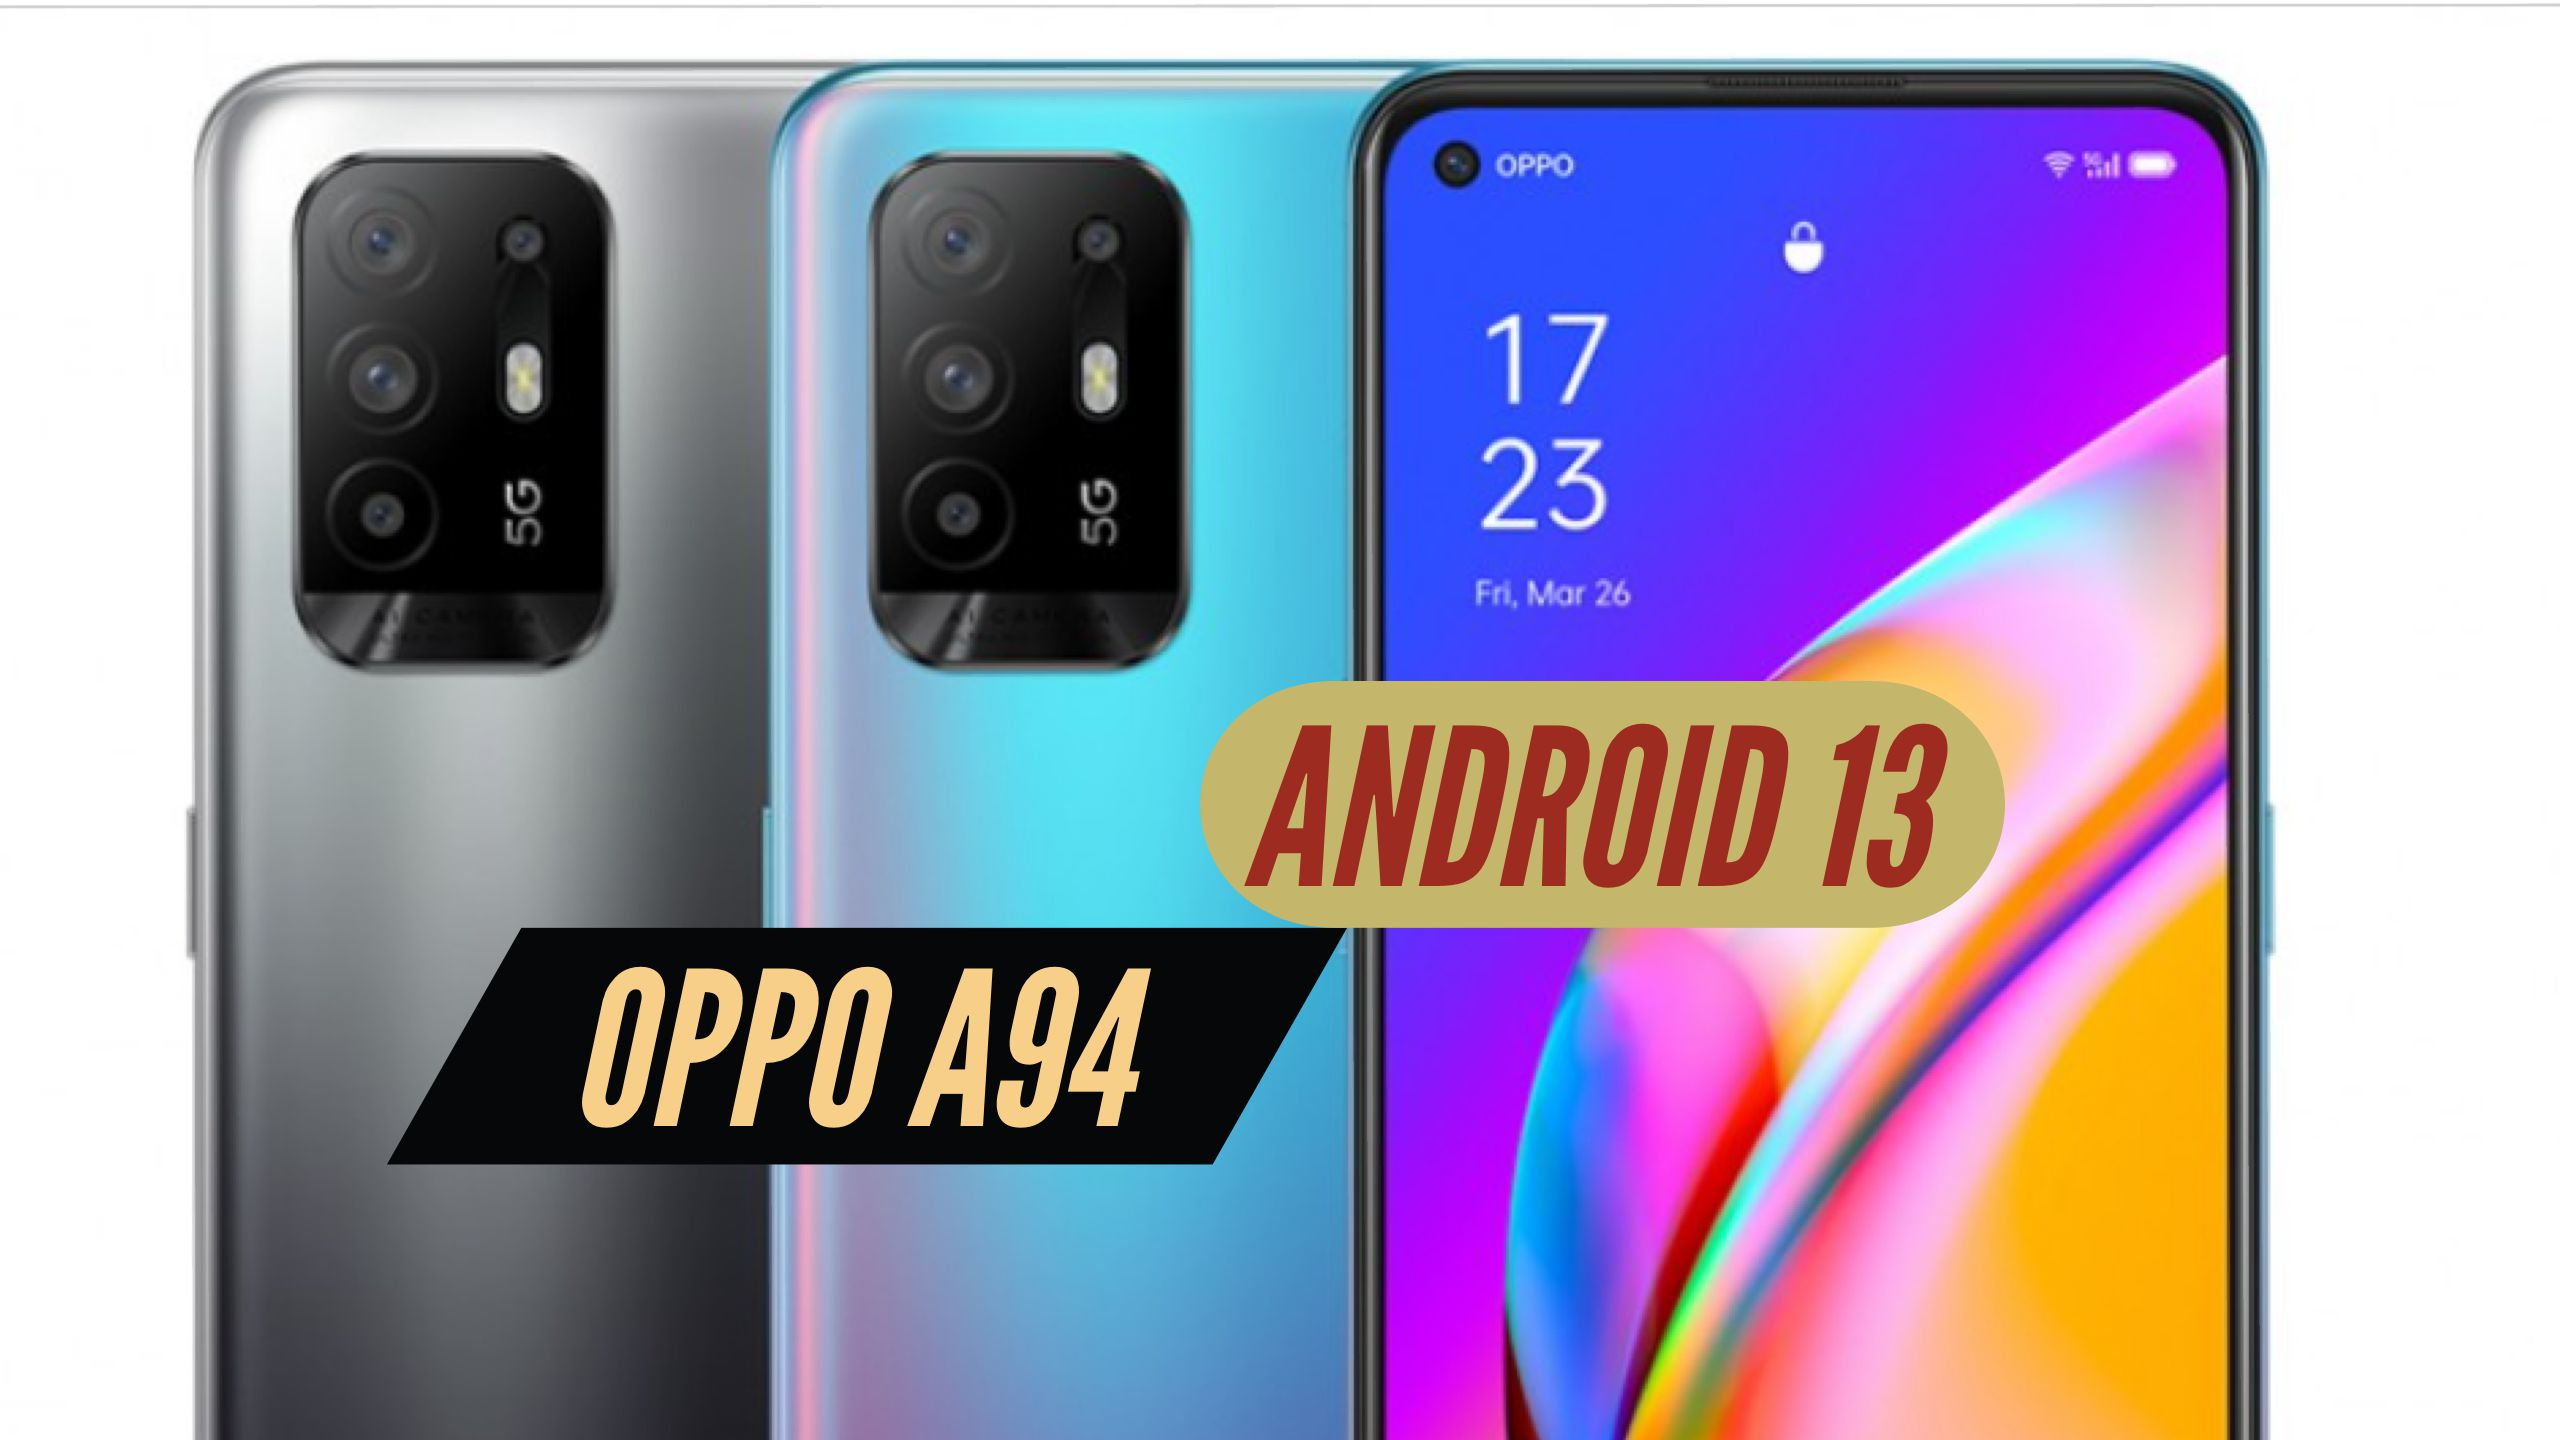 OPPO A94 Android 13